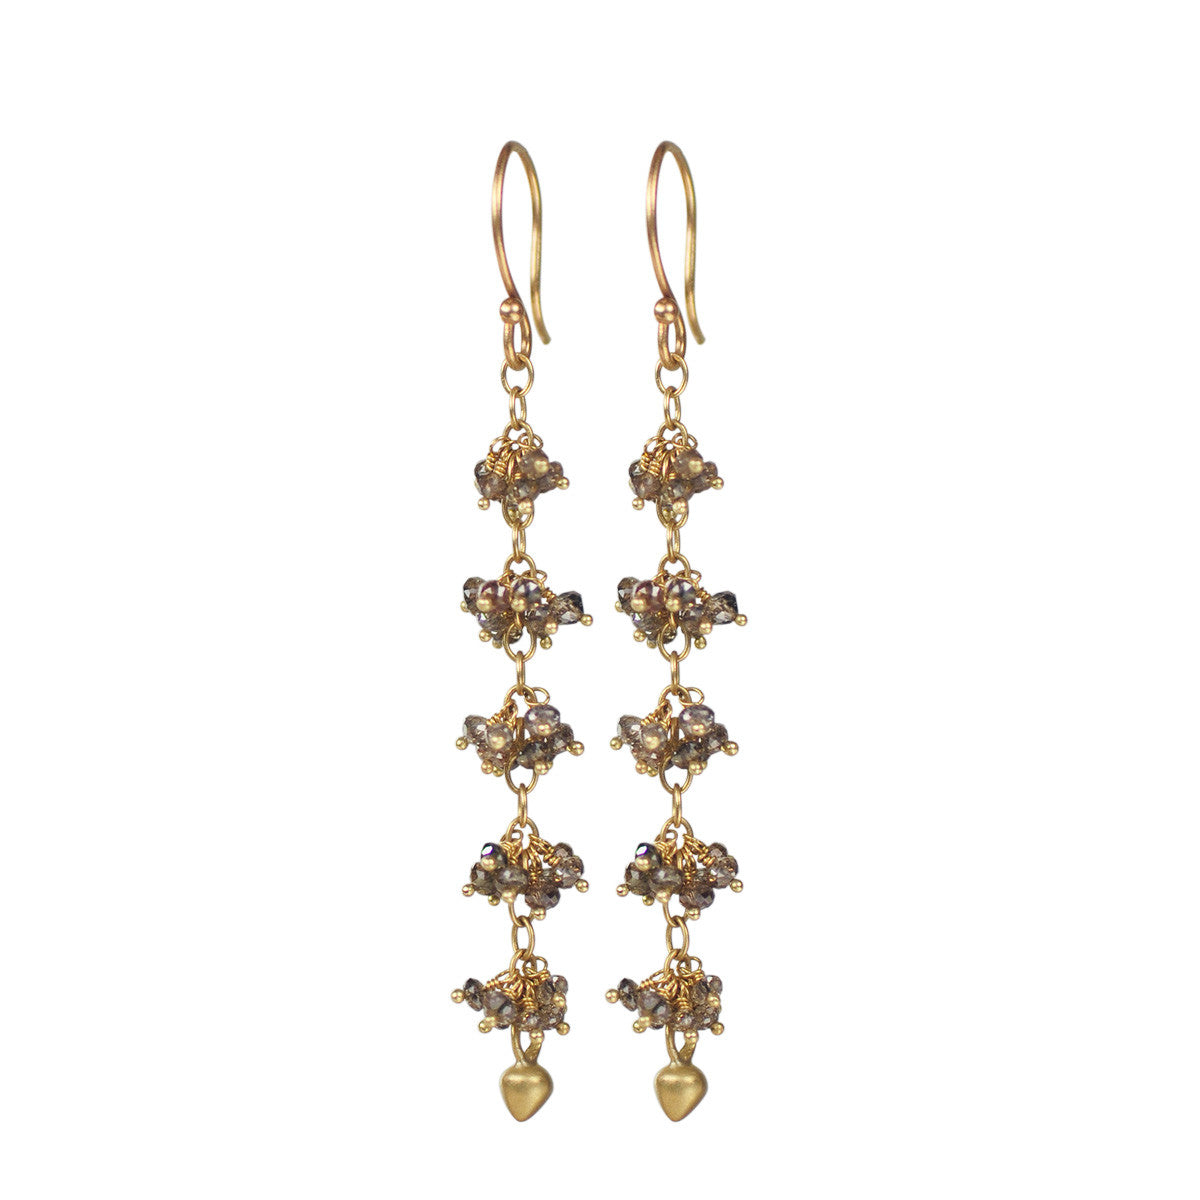 18K Gold 5 Beaded Brown Diamond Cluster Earrings with Lotus Buds